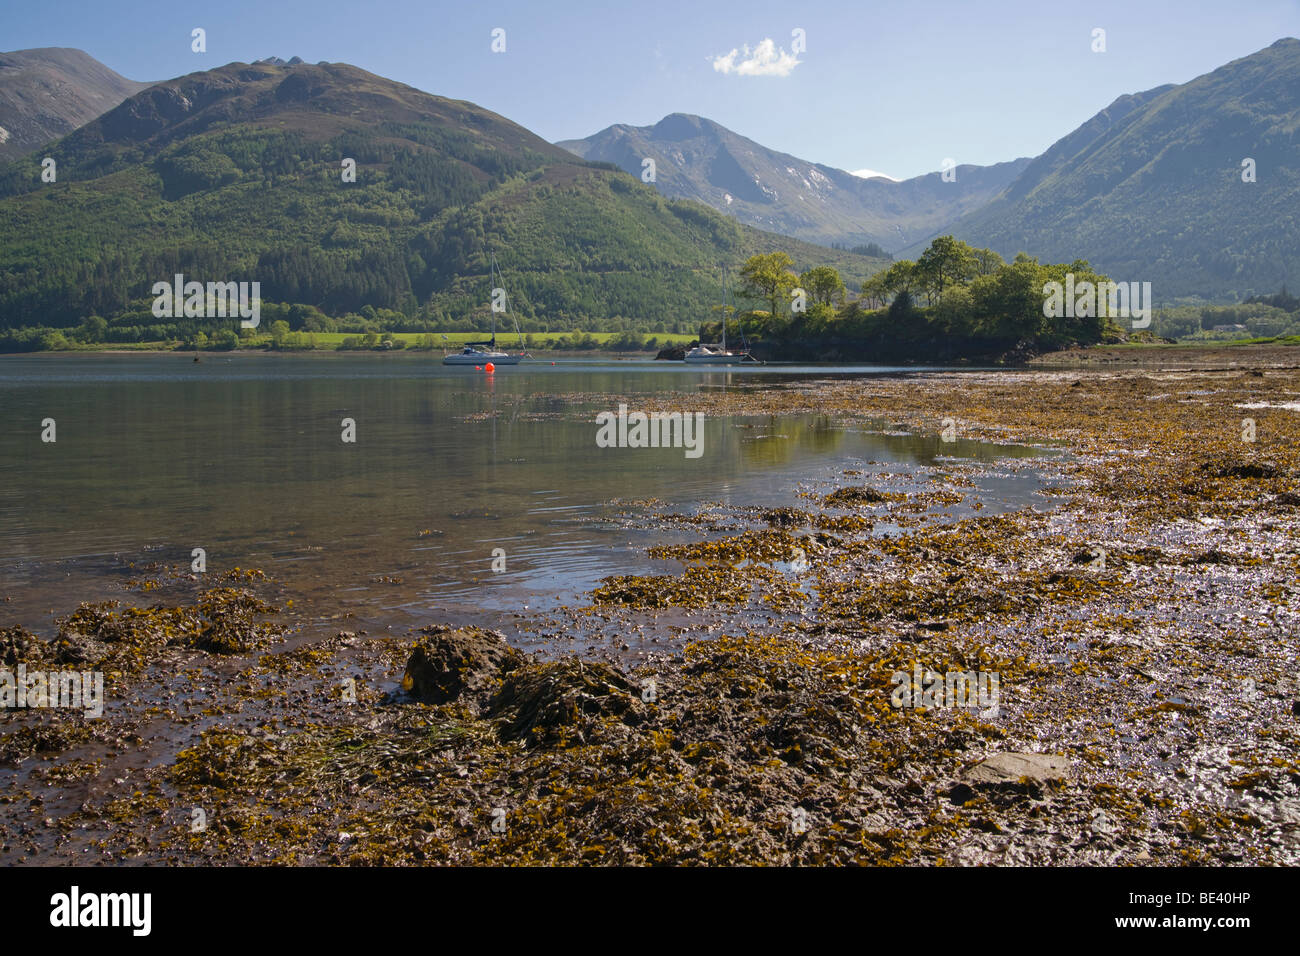 Loch Leven, Bishop's Bay, looking to Glencoe, North Ballachulish, Highland Region, Scotland, June, 2009 - Stock Image